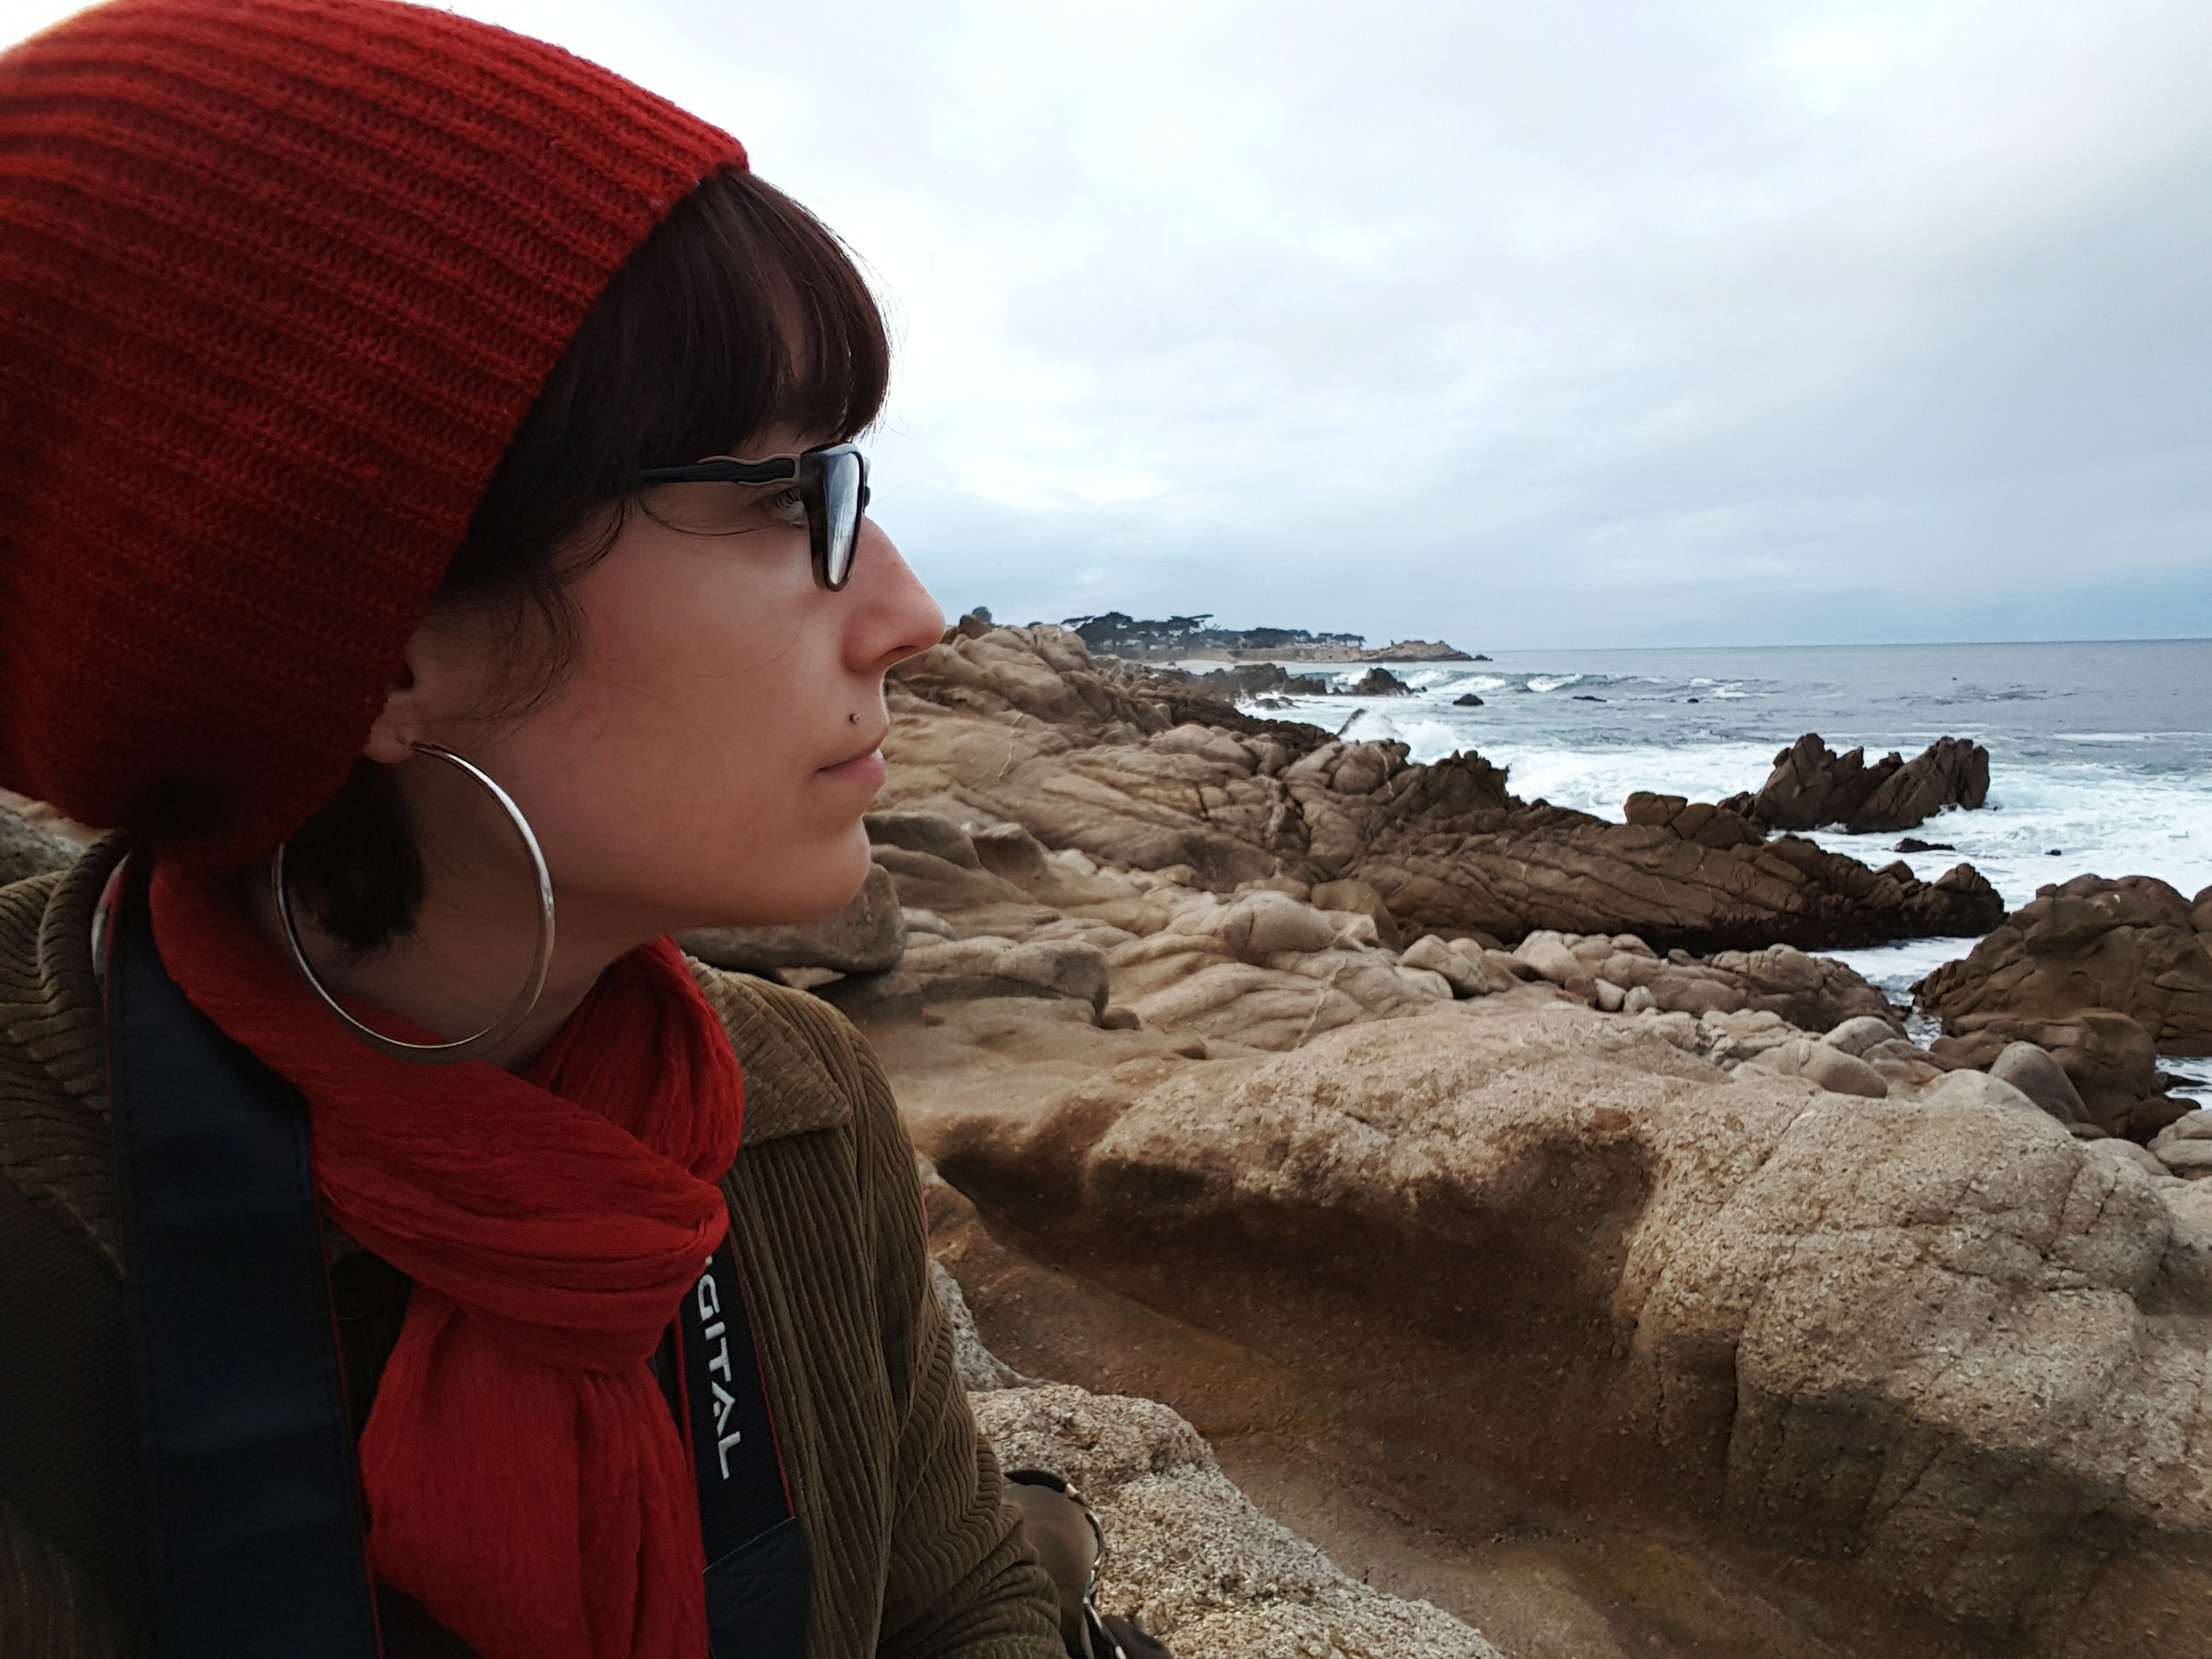 Listening to the crashing waves of the Pacific Ocean on the shore in Pacific Grove, CA